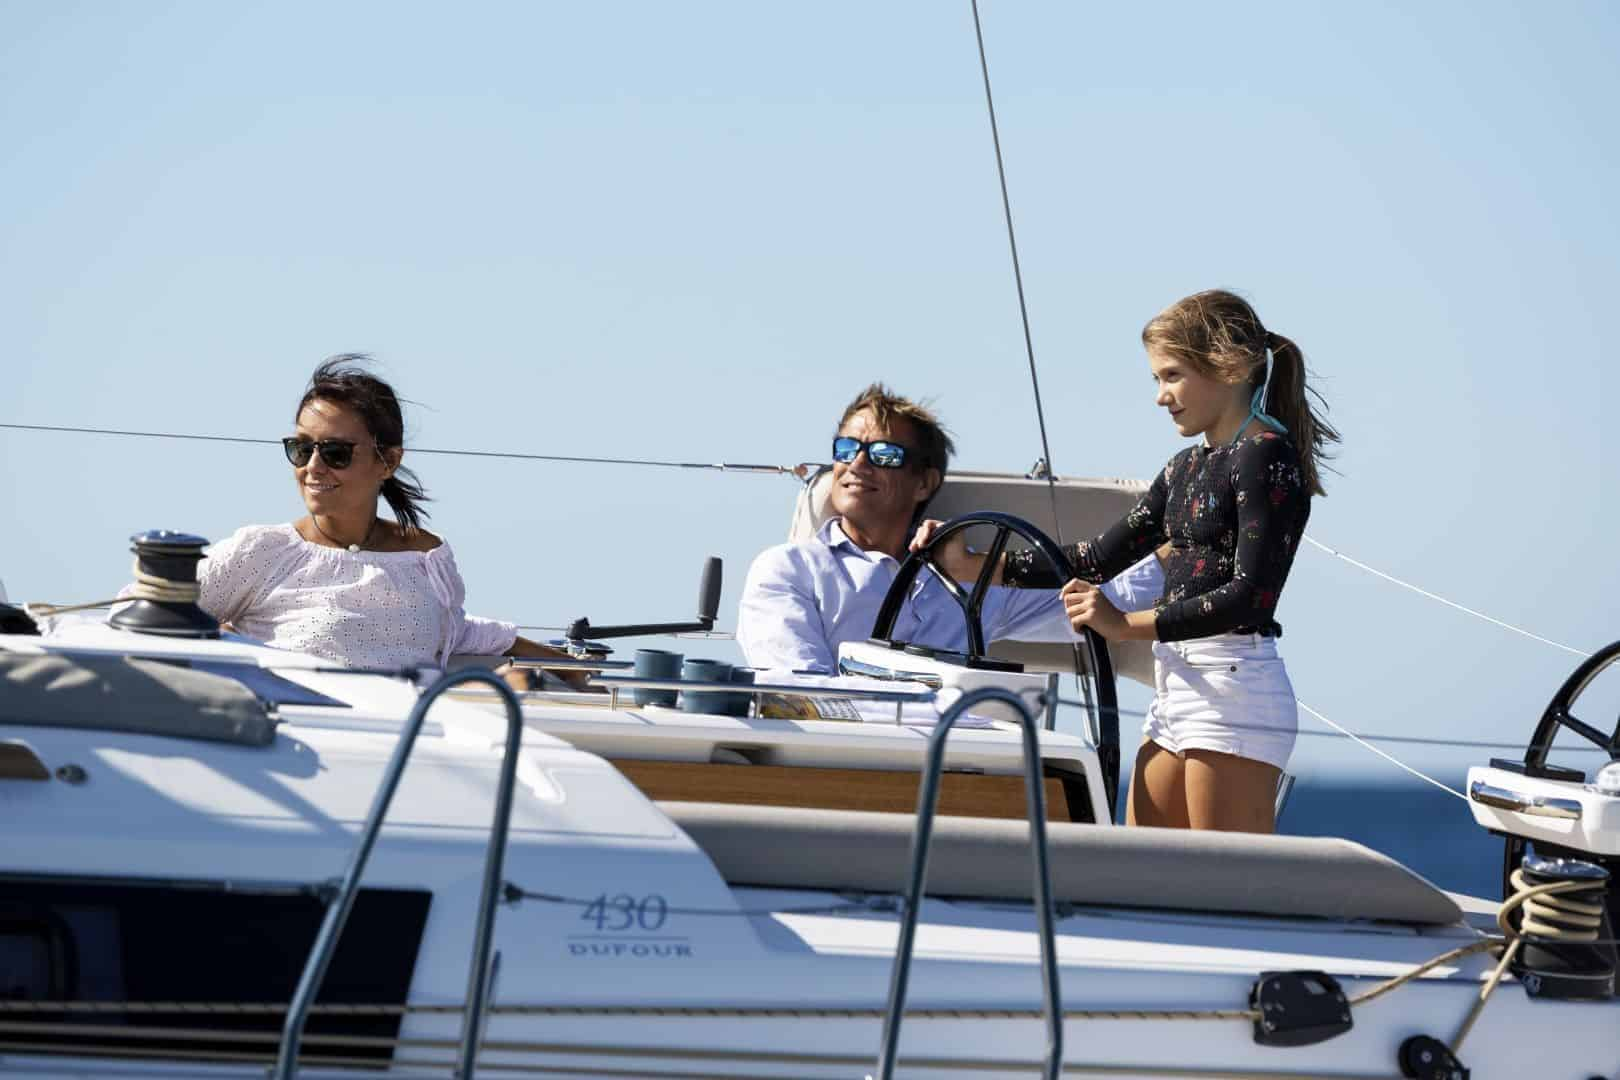 Man, woman and a young girl and the cockpit of the Dufour Grand Large 430 enjoying themselves with the girl at the steering wheel